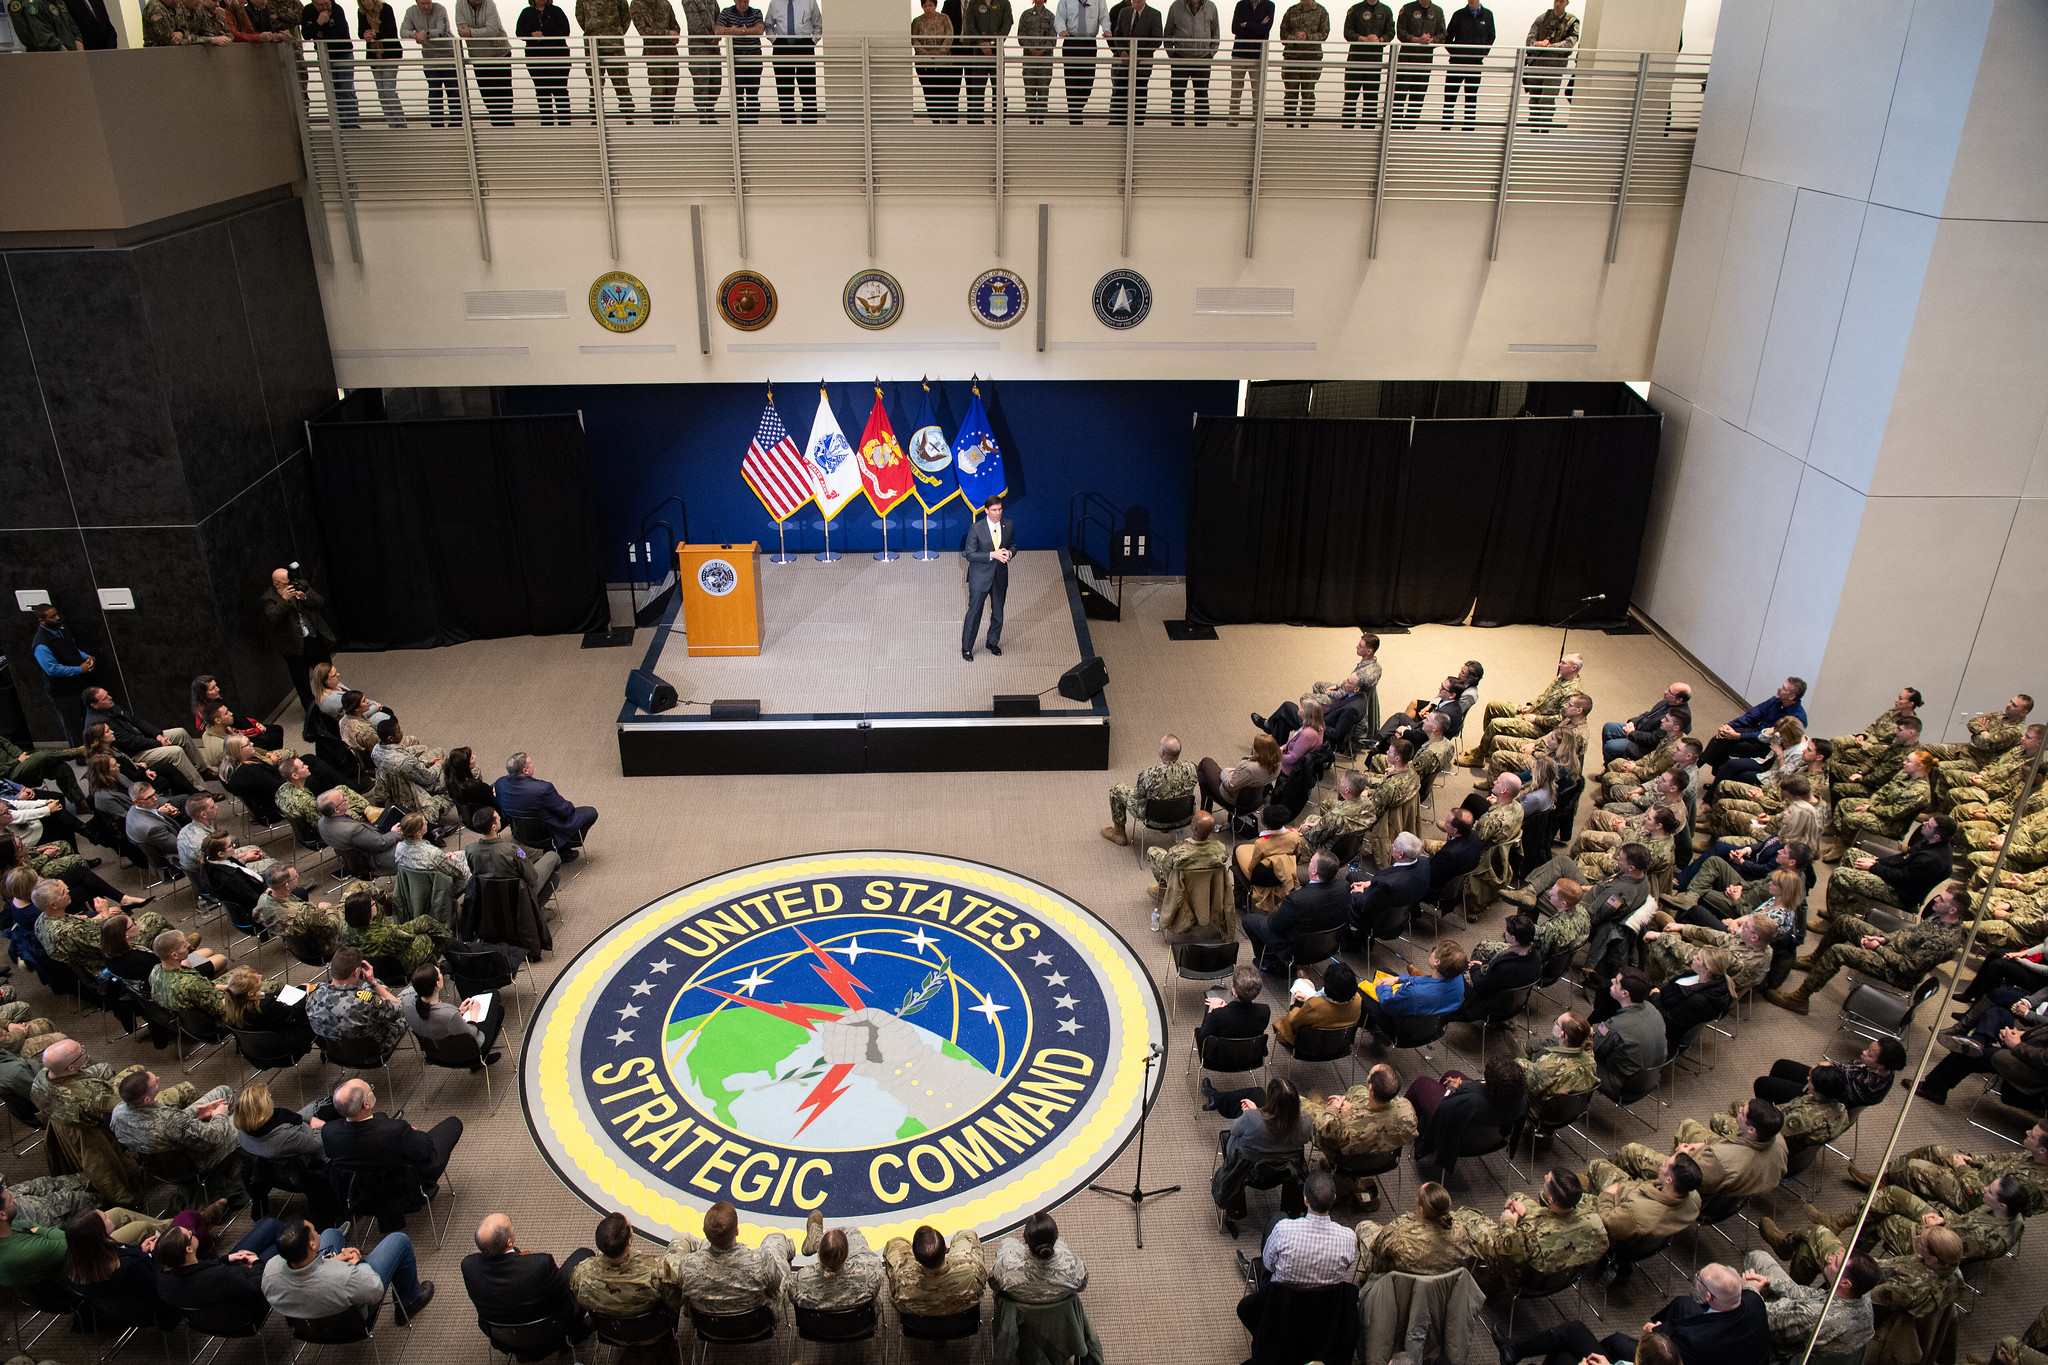 Defense Secretary Mark Esper hosts a town hall during his visit to STRATCOM headquarters at Offutt Air Force Base, Neb., Feb. 20, 2020. (Army Staff Sgt. Nicole Mejia/DoD)